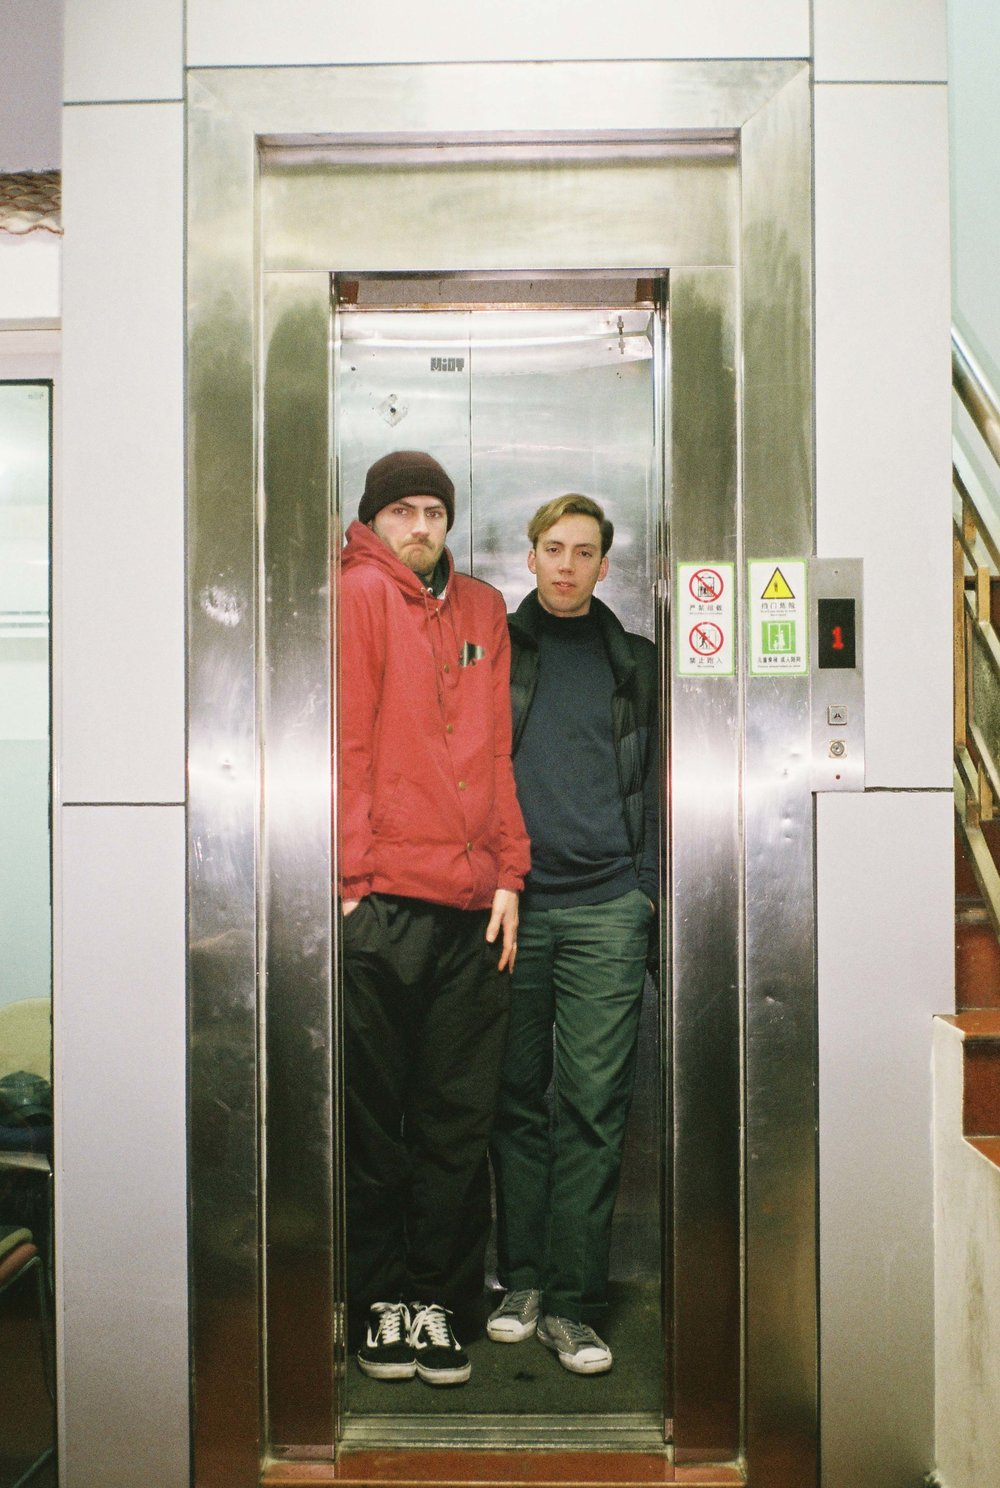 lovebang elevator 310 small.jpg